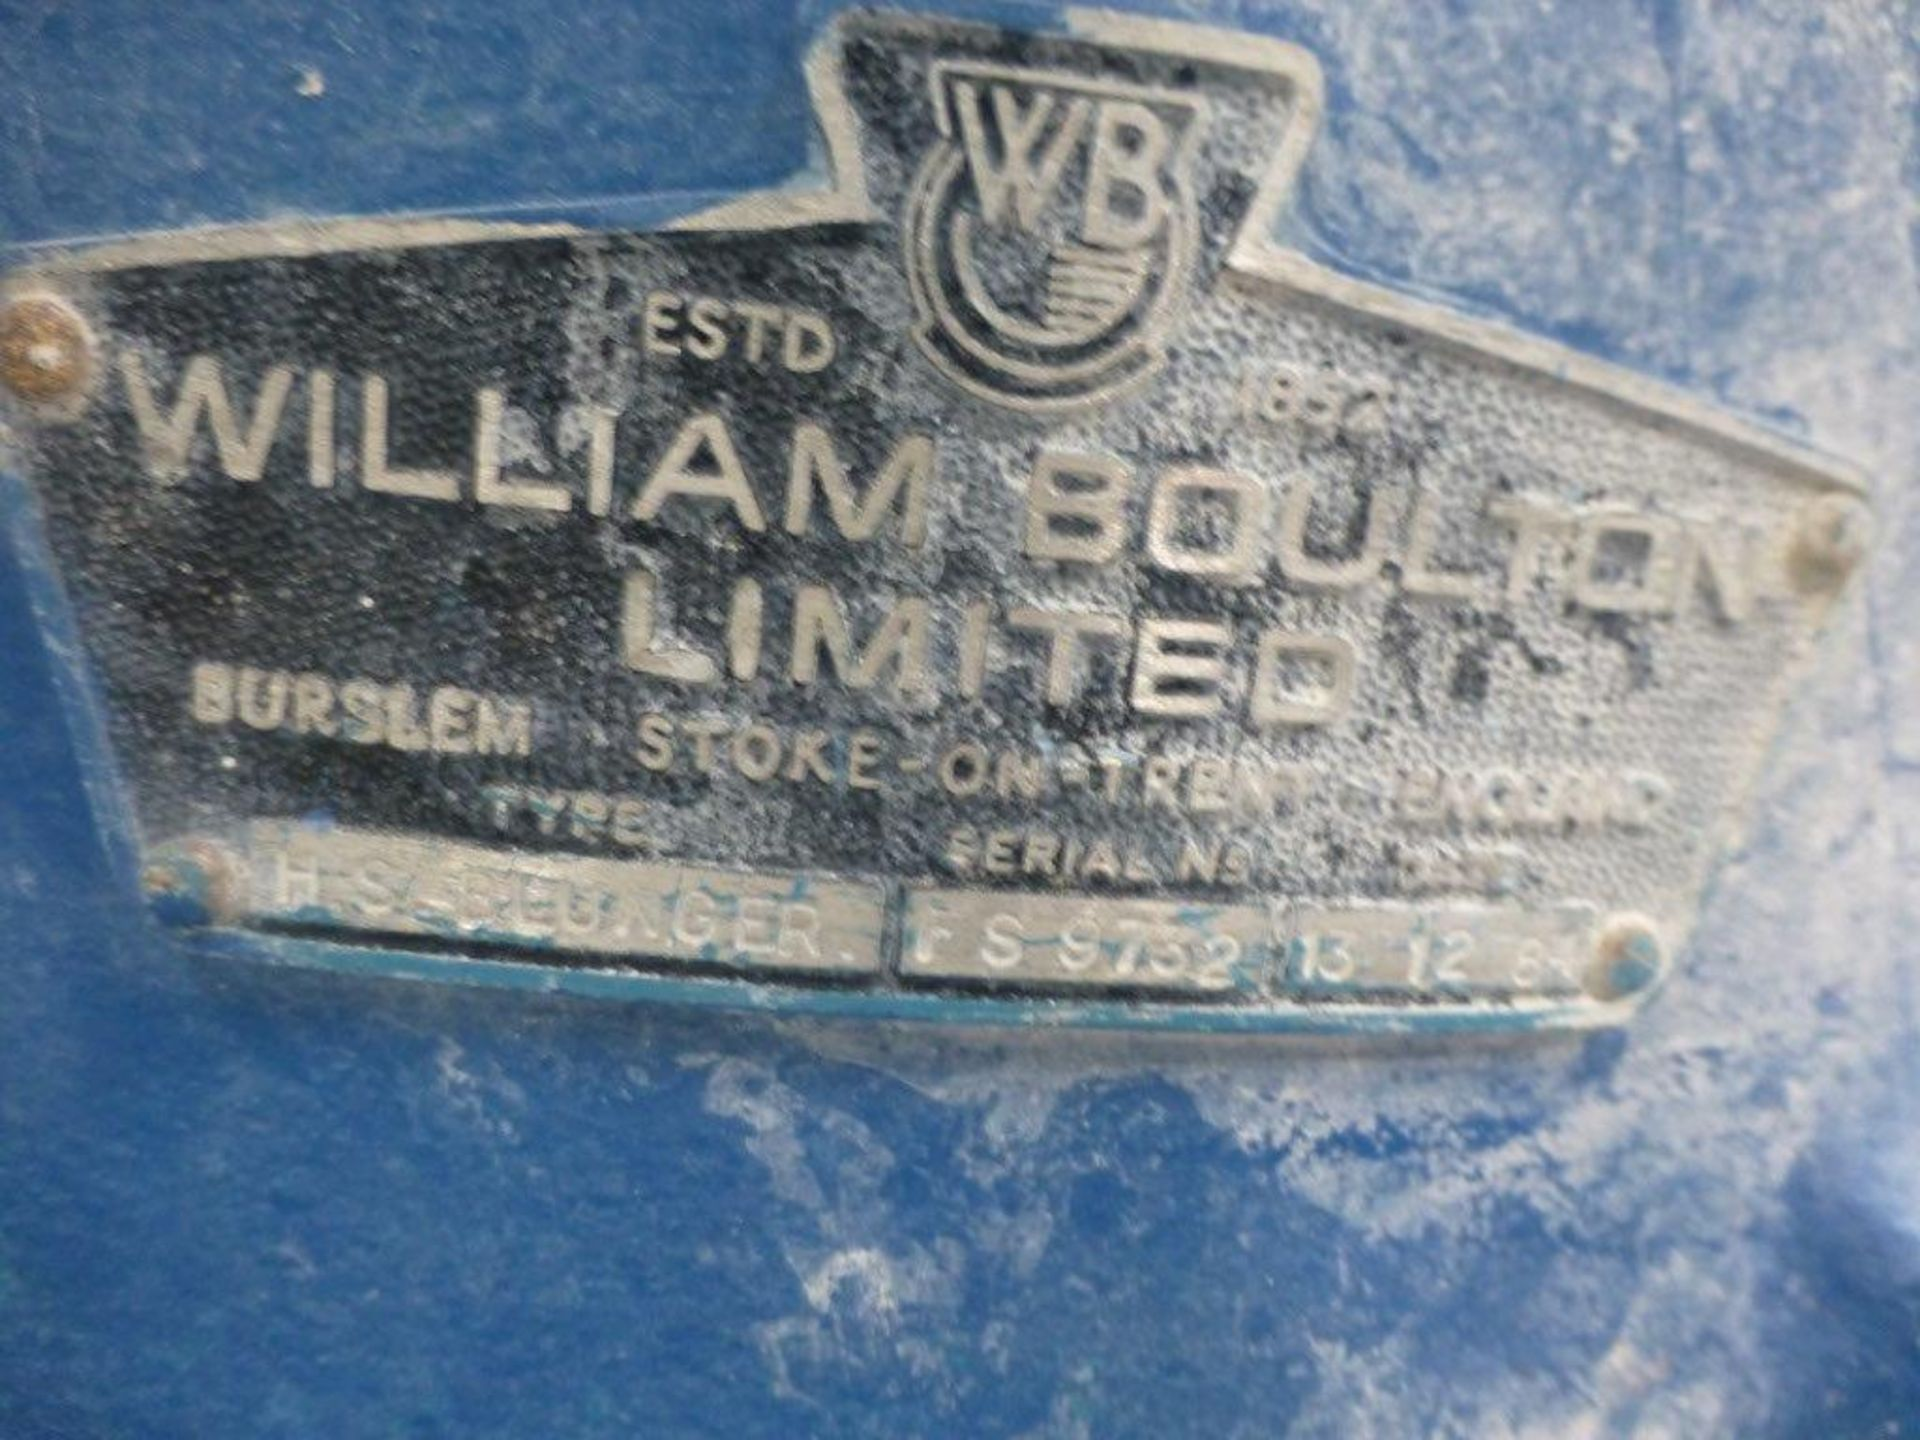 Lot 22 - William Boulton HS-Blunger, VIT clay blunger serial No FS-9732, Plant No SHB2 CHINA CLAY BLUNGER 2